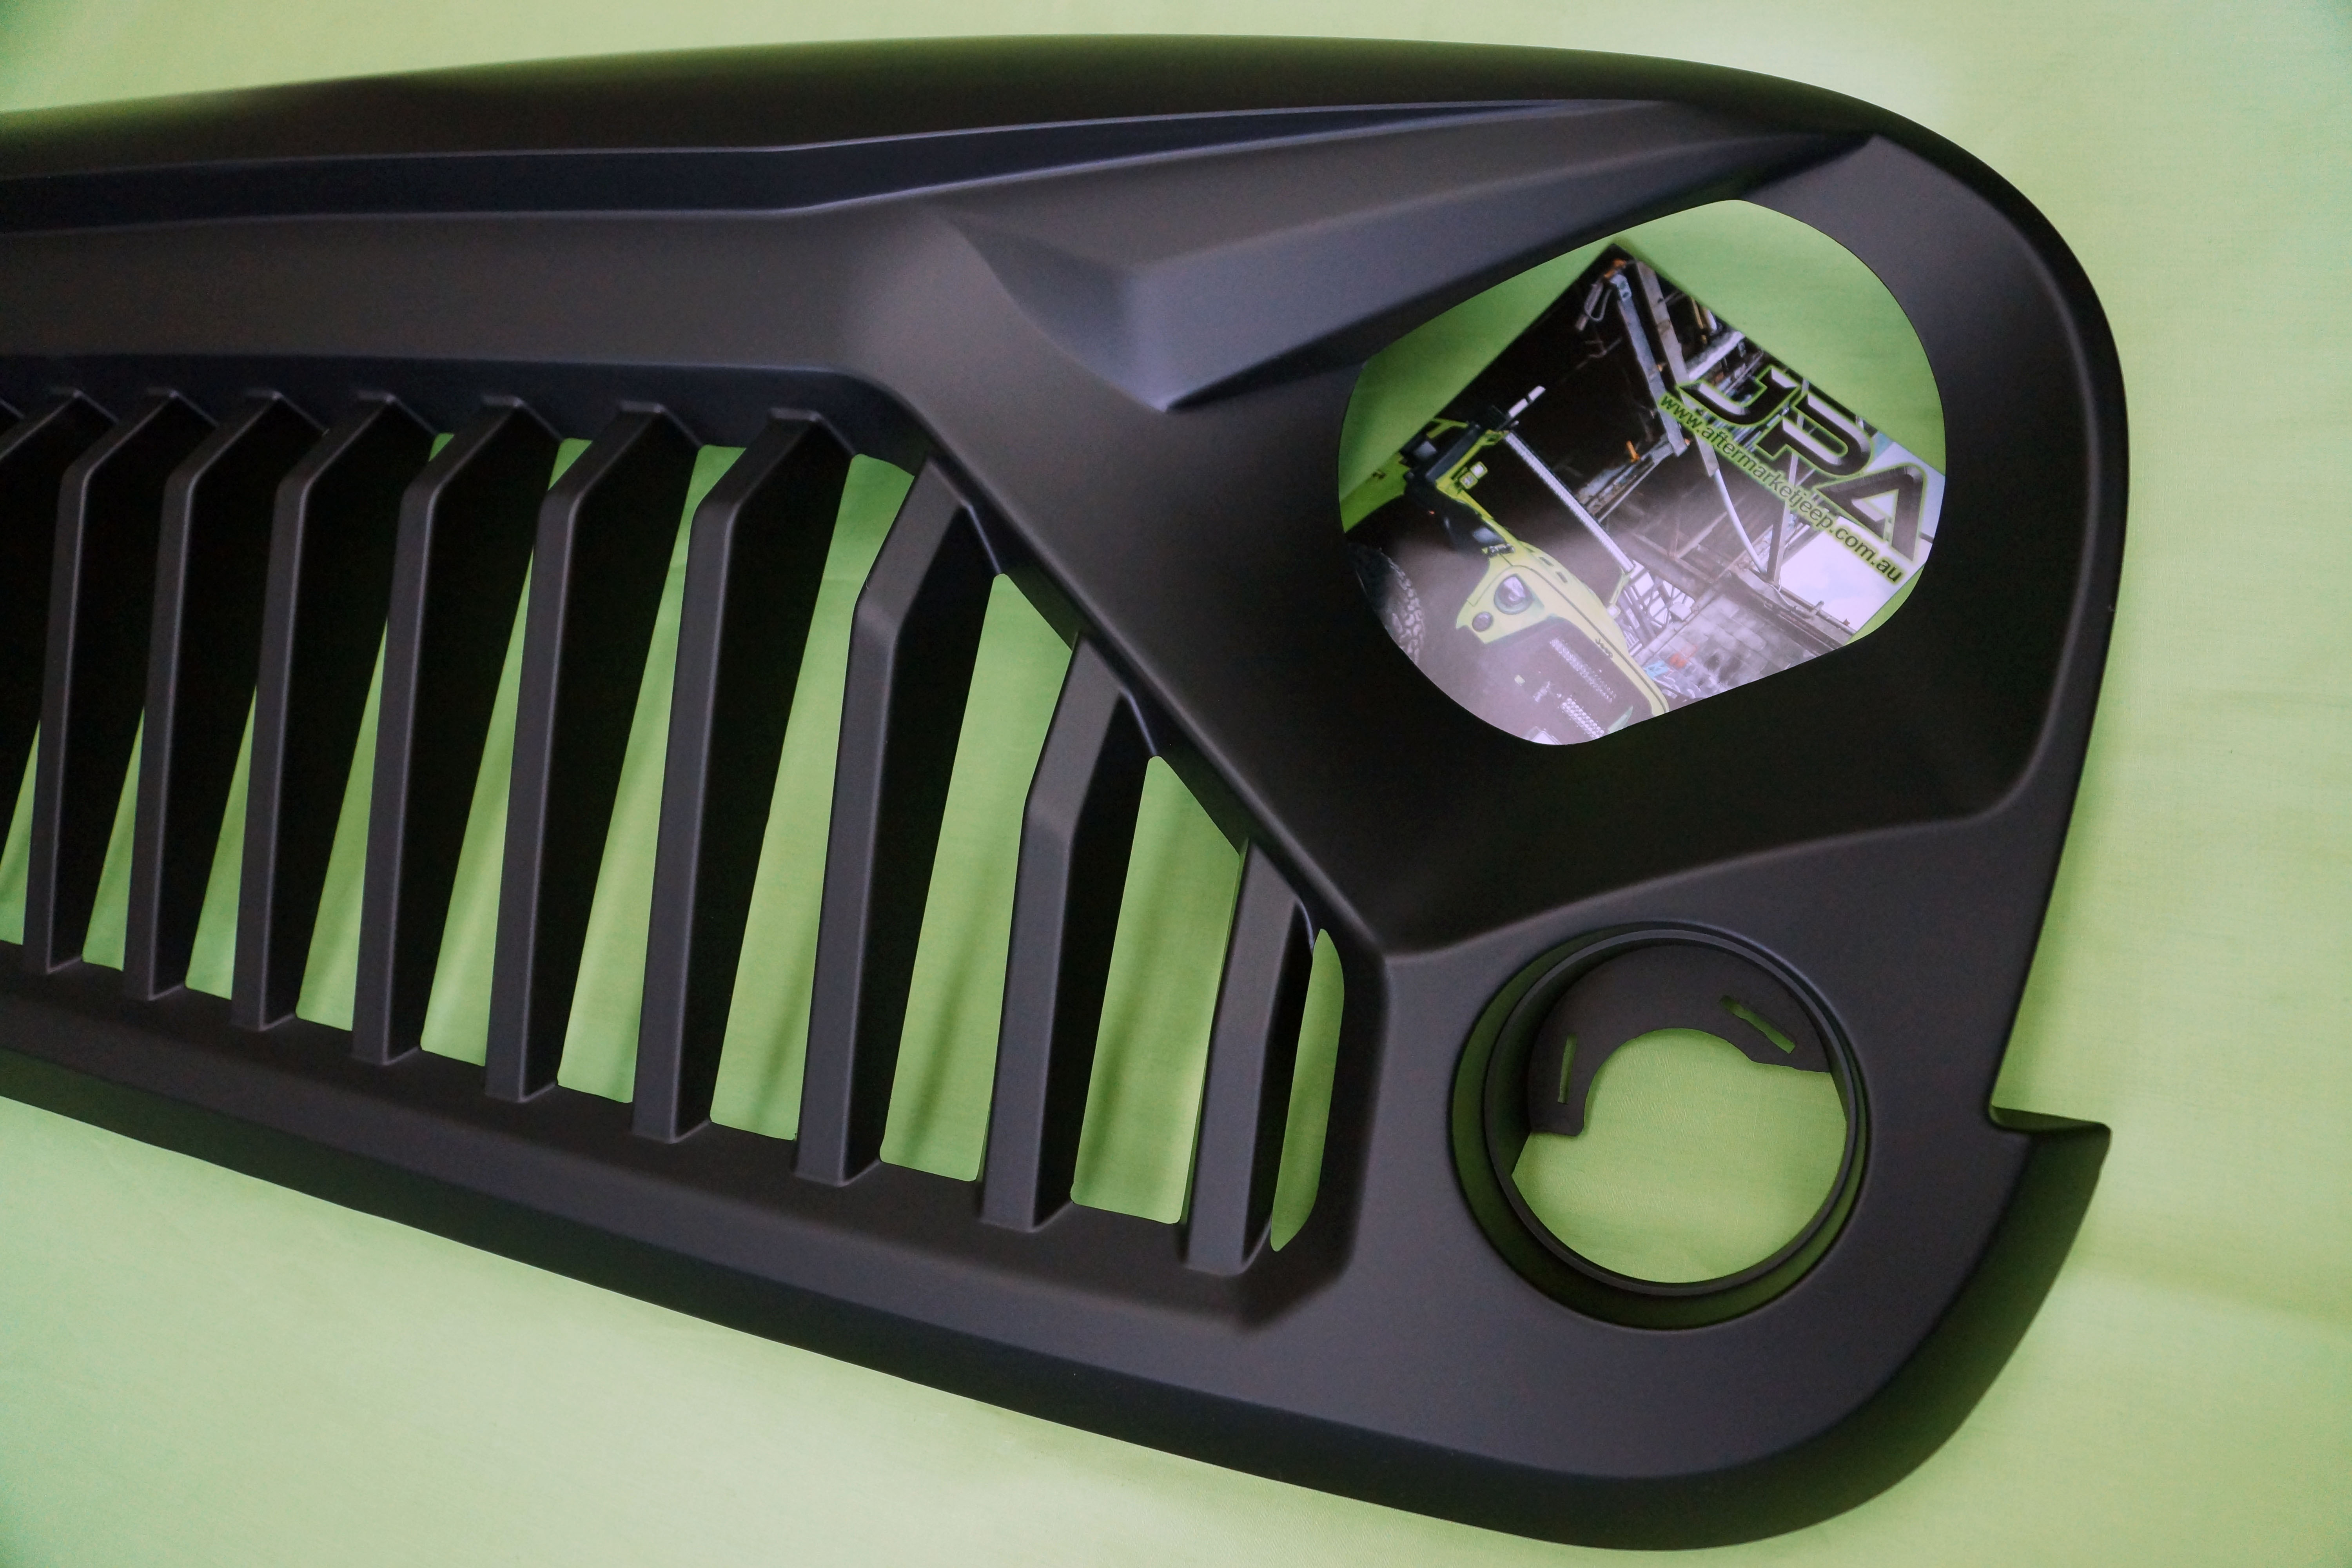 Jeep Wrangler Seat Covers >> Jeep Wrangler Stormtrooper Angry Grill / Grille for JK WRANGLER 07-17 | Aftermarket Jeep Parts ...